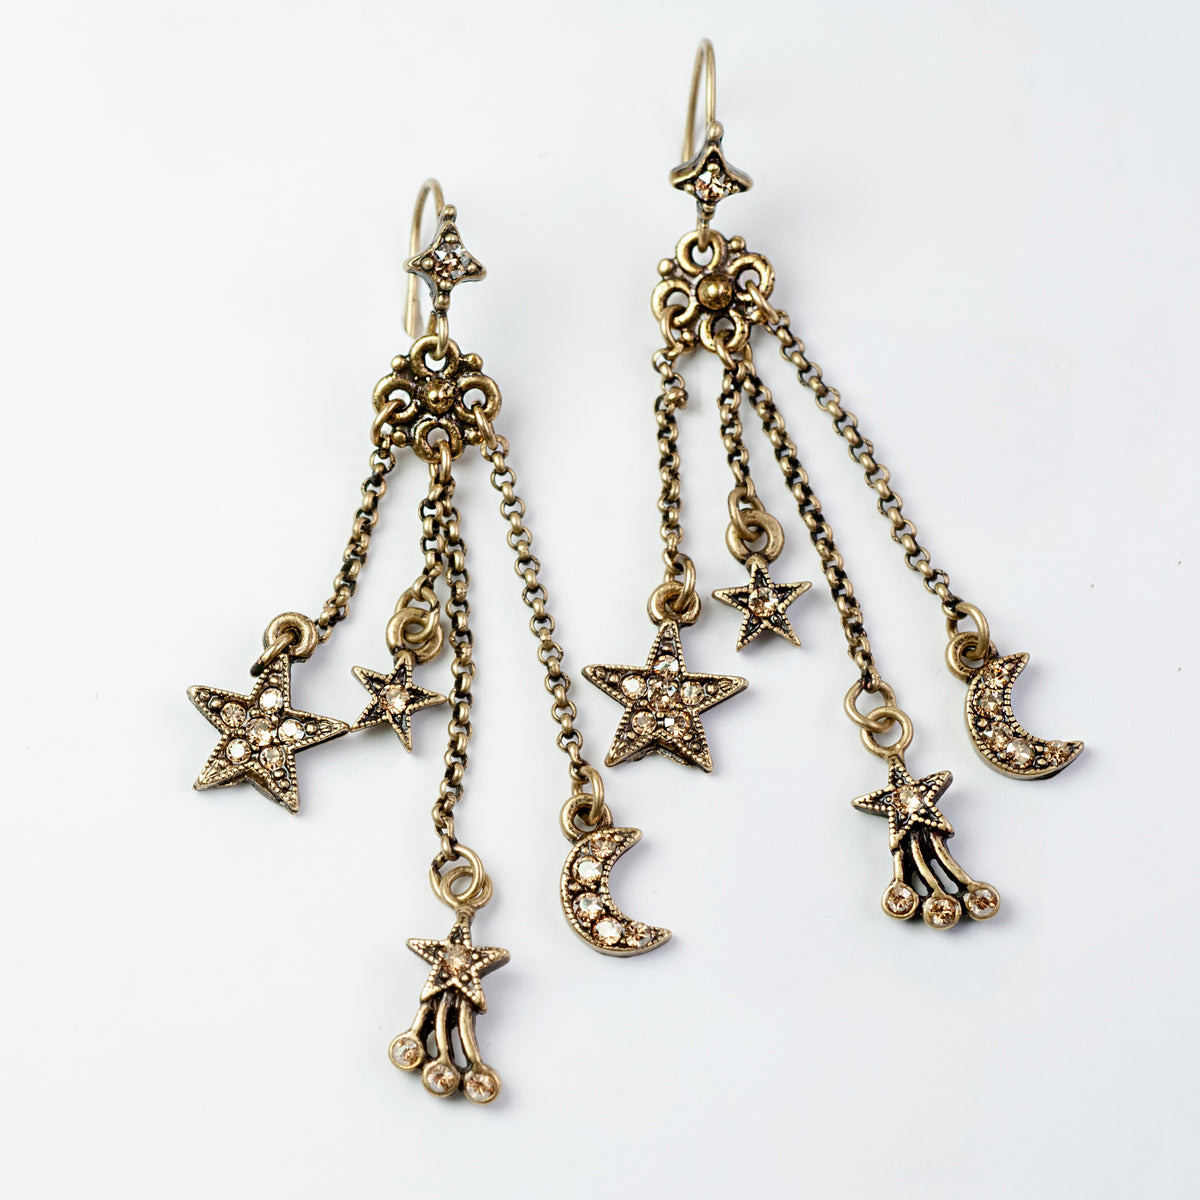 Moon & Star Delicate Tassel Earrings E1500 - Sweet Romance Wholesale